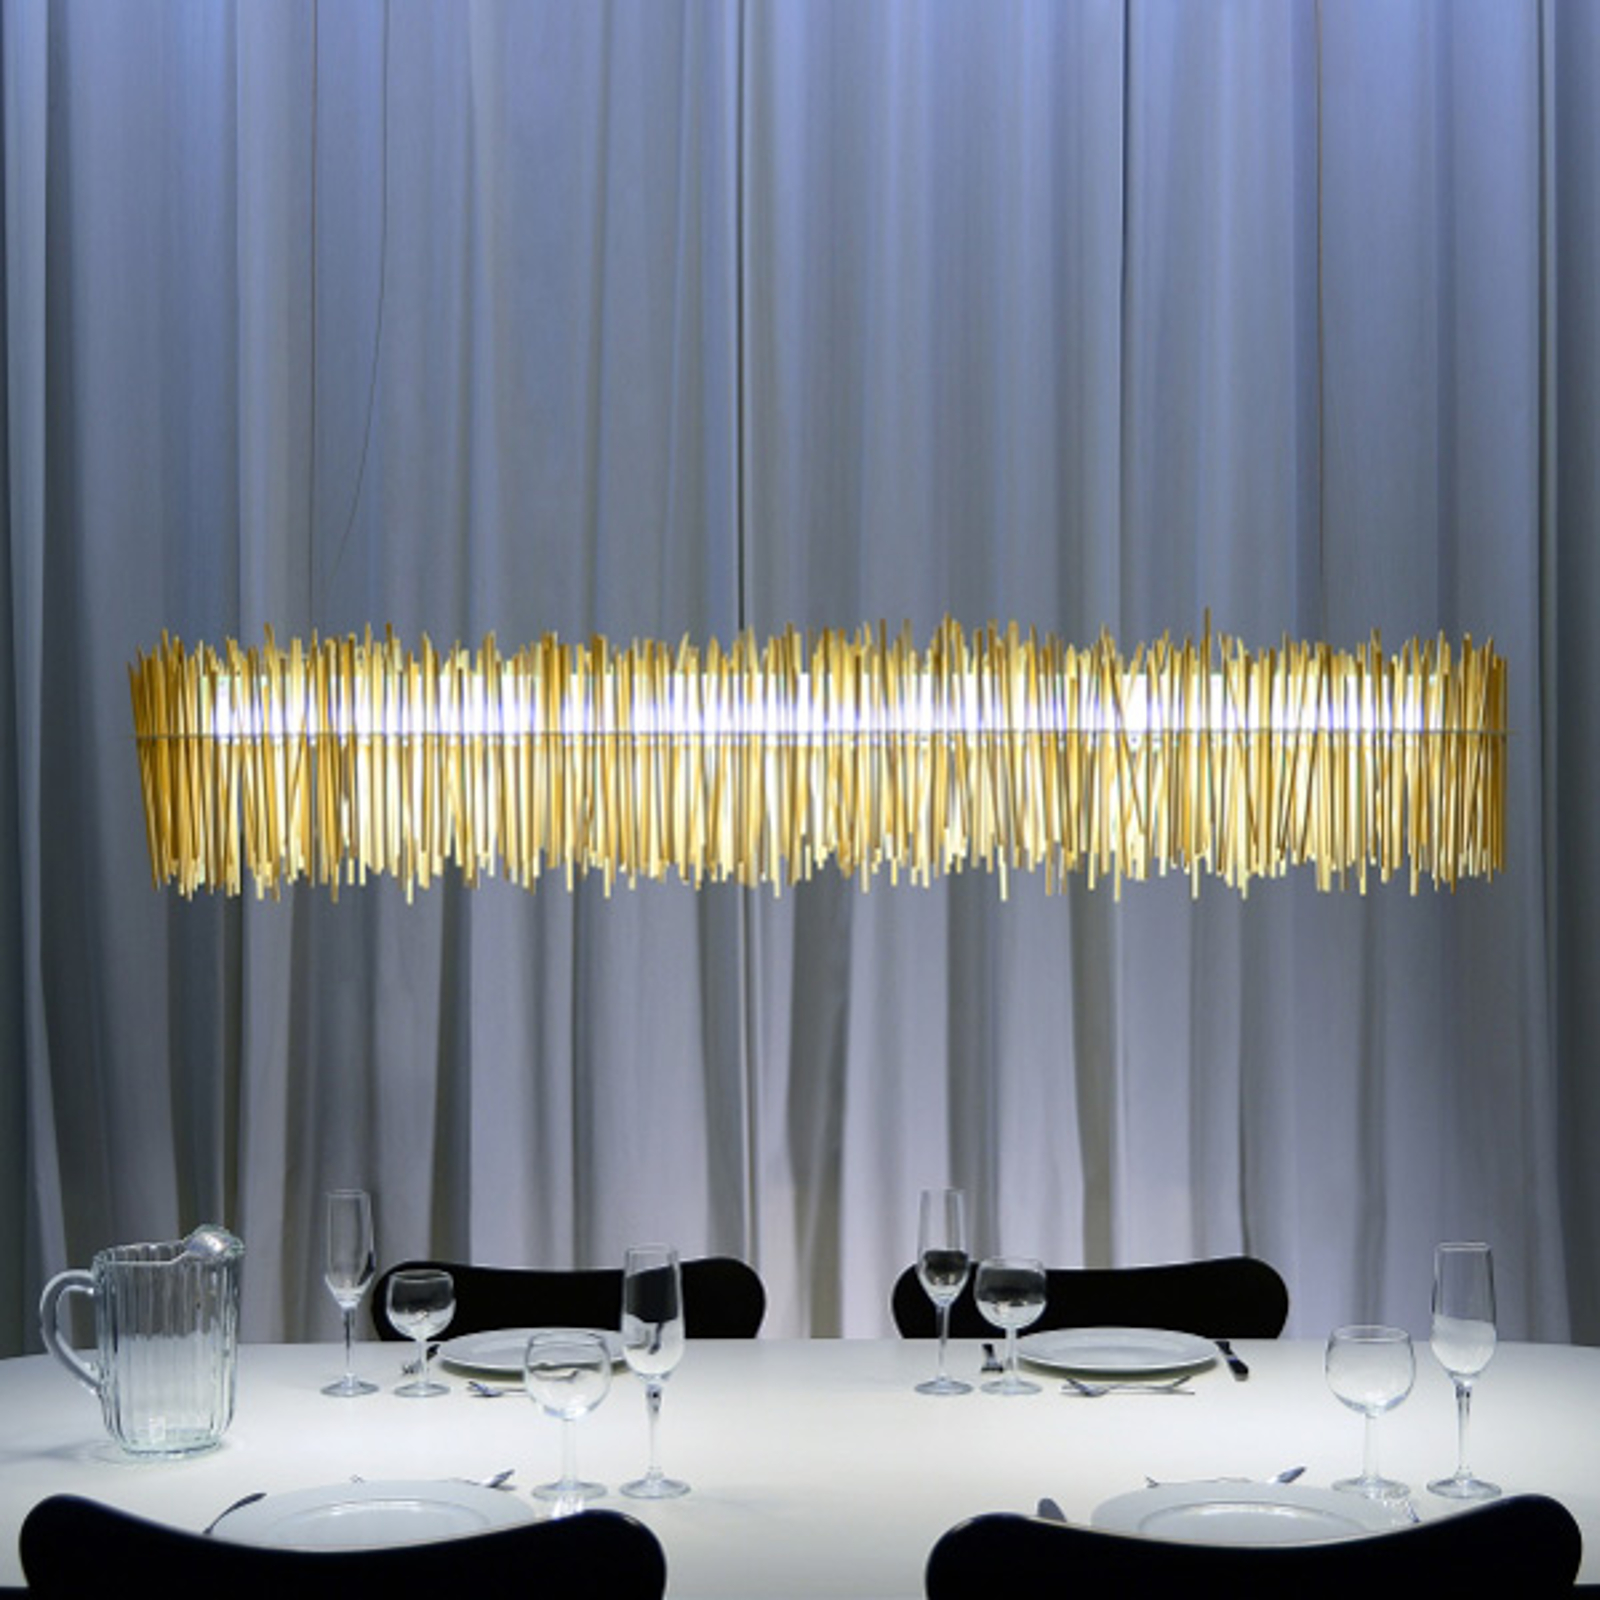 Hayashi LED hanging light made of chopsticks_1057160_1